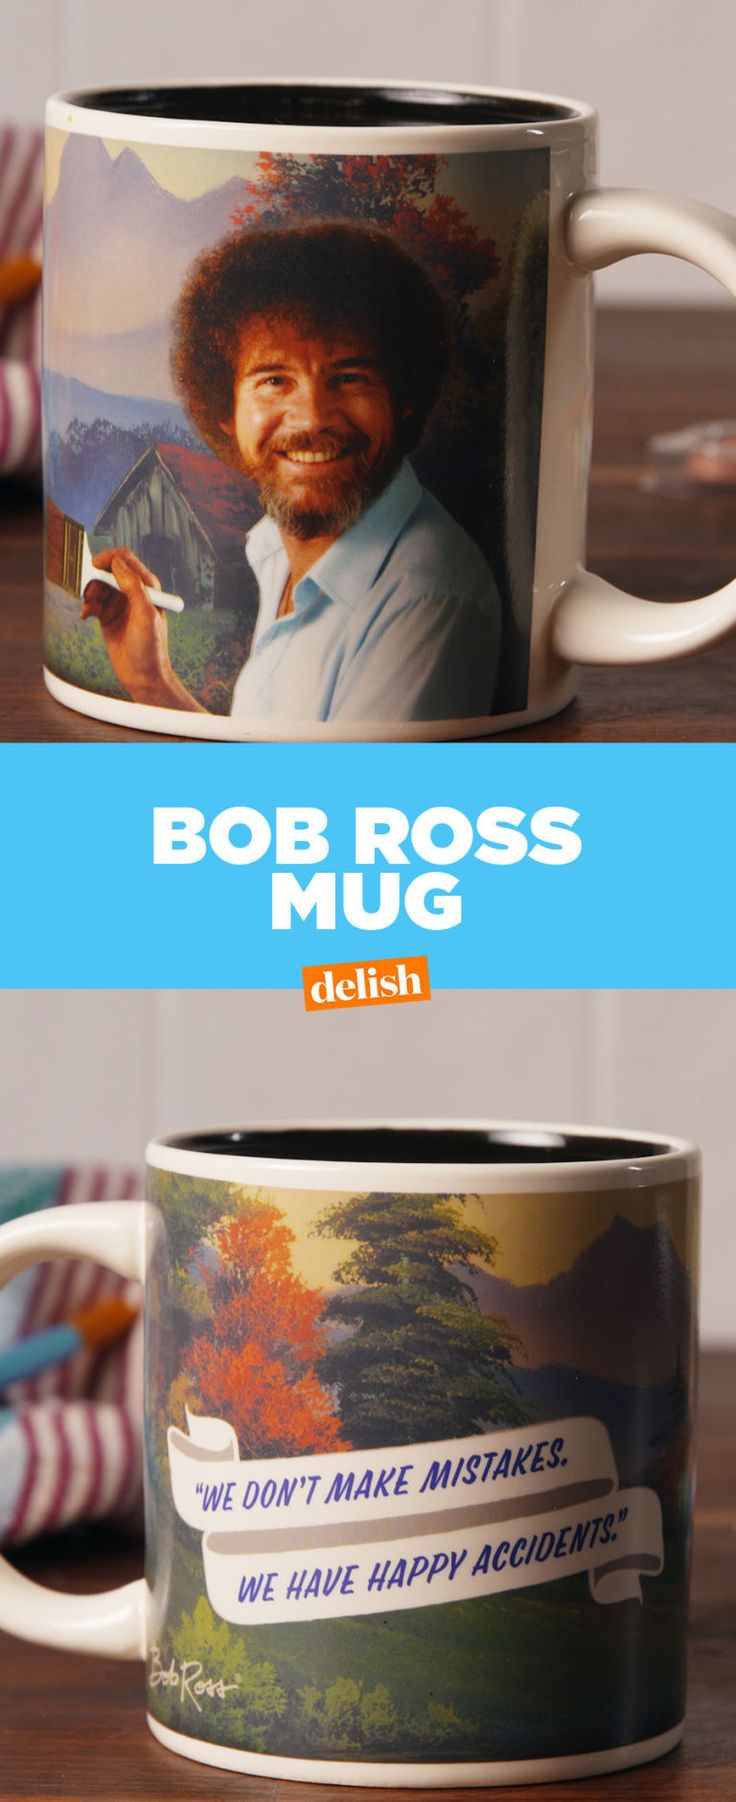 You've Got To See How This Bob Ross Mug Transforms When You Pour Coffee In It